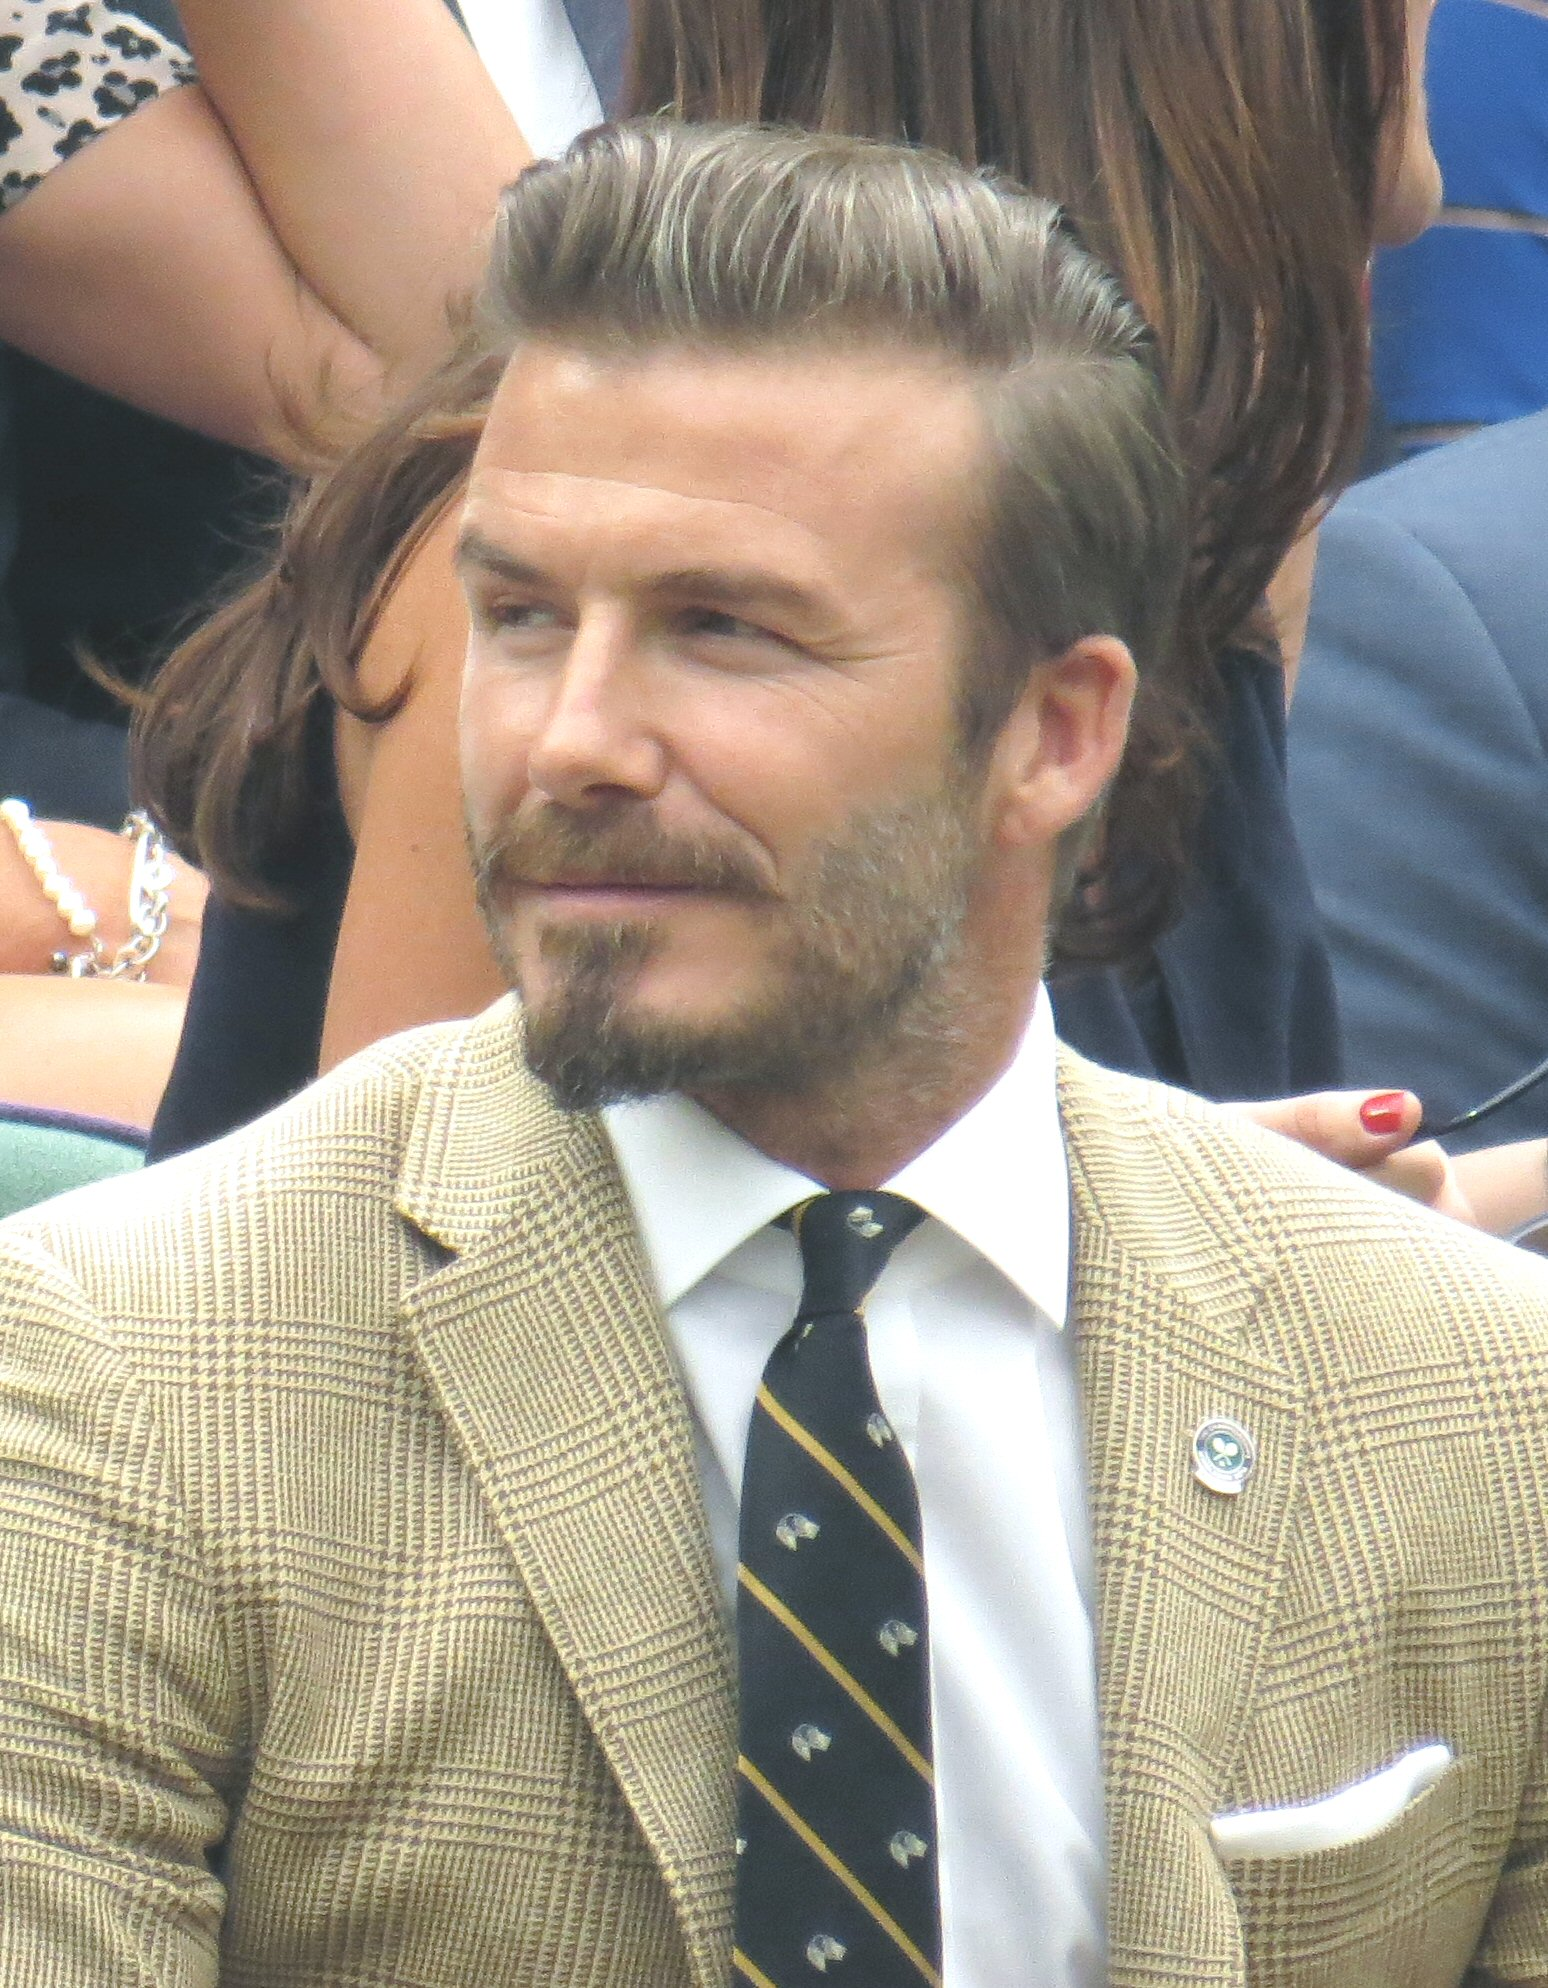 The 43-year old son of father Ted Beckham and mother Sandra West David Beckham in 2018 photo. David Beckham earned a 50 million dollar salary - leaving the net worth at 350 million in 2018